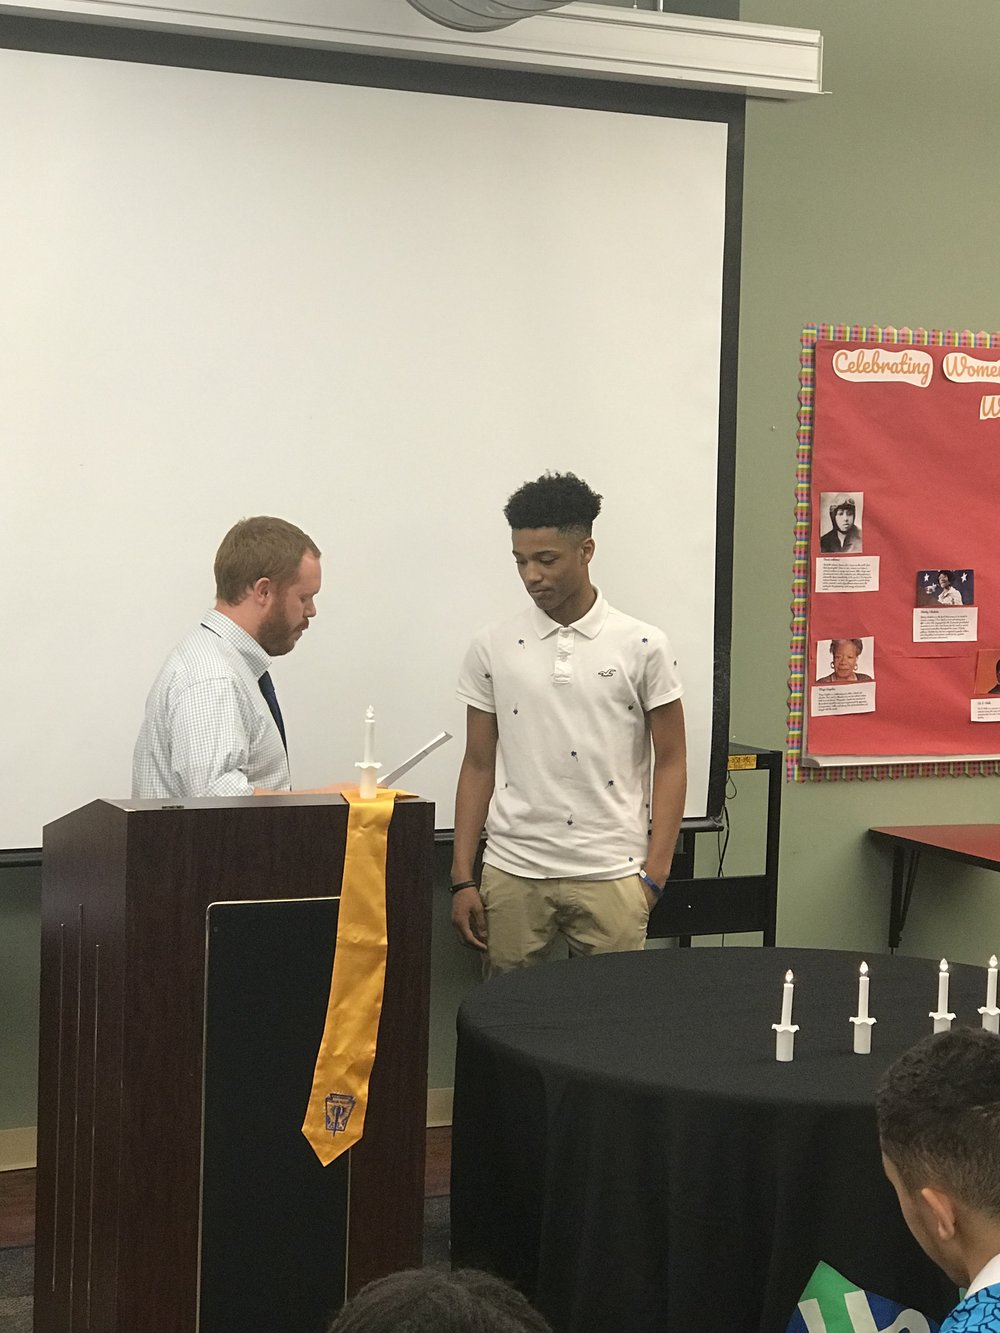 Mr. Mutschler welcomes Darnell to NHS at UPCS 6-12